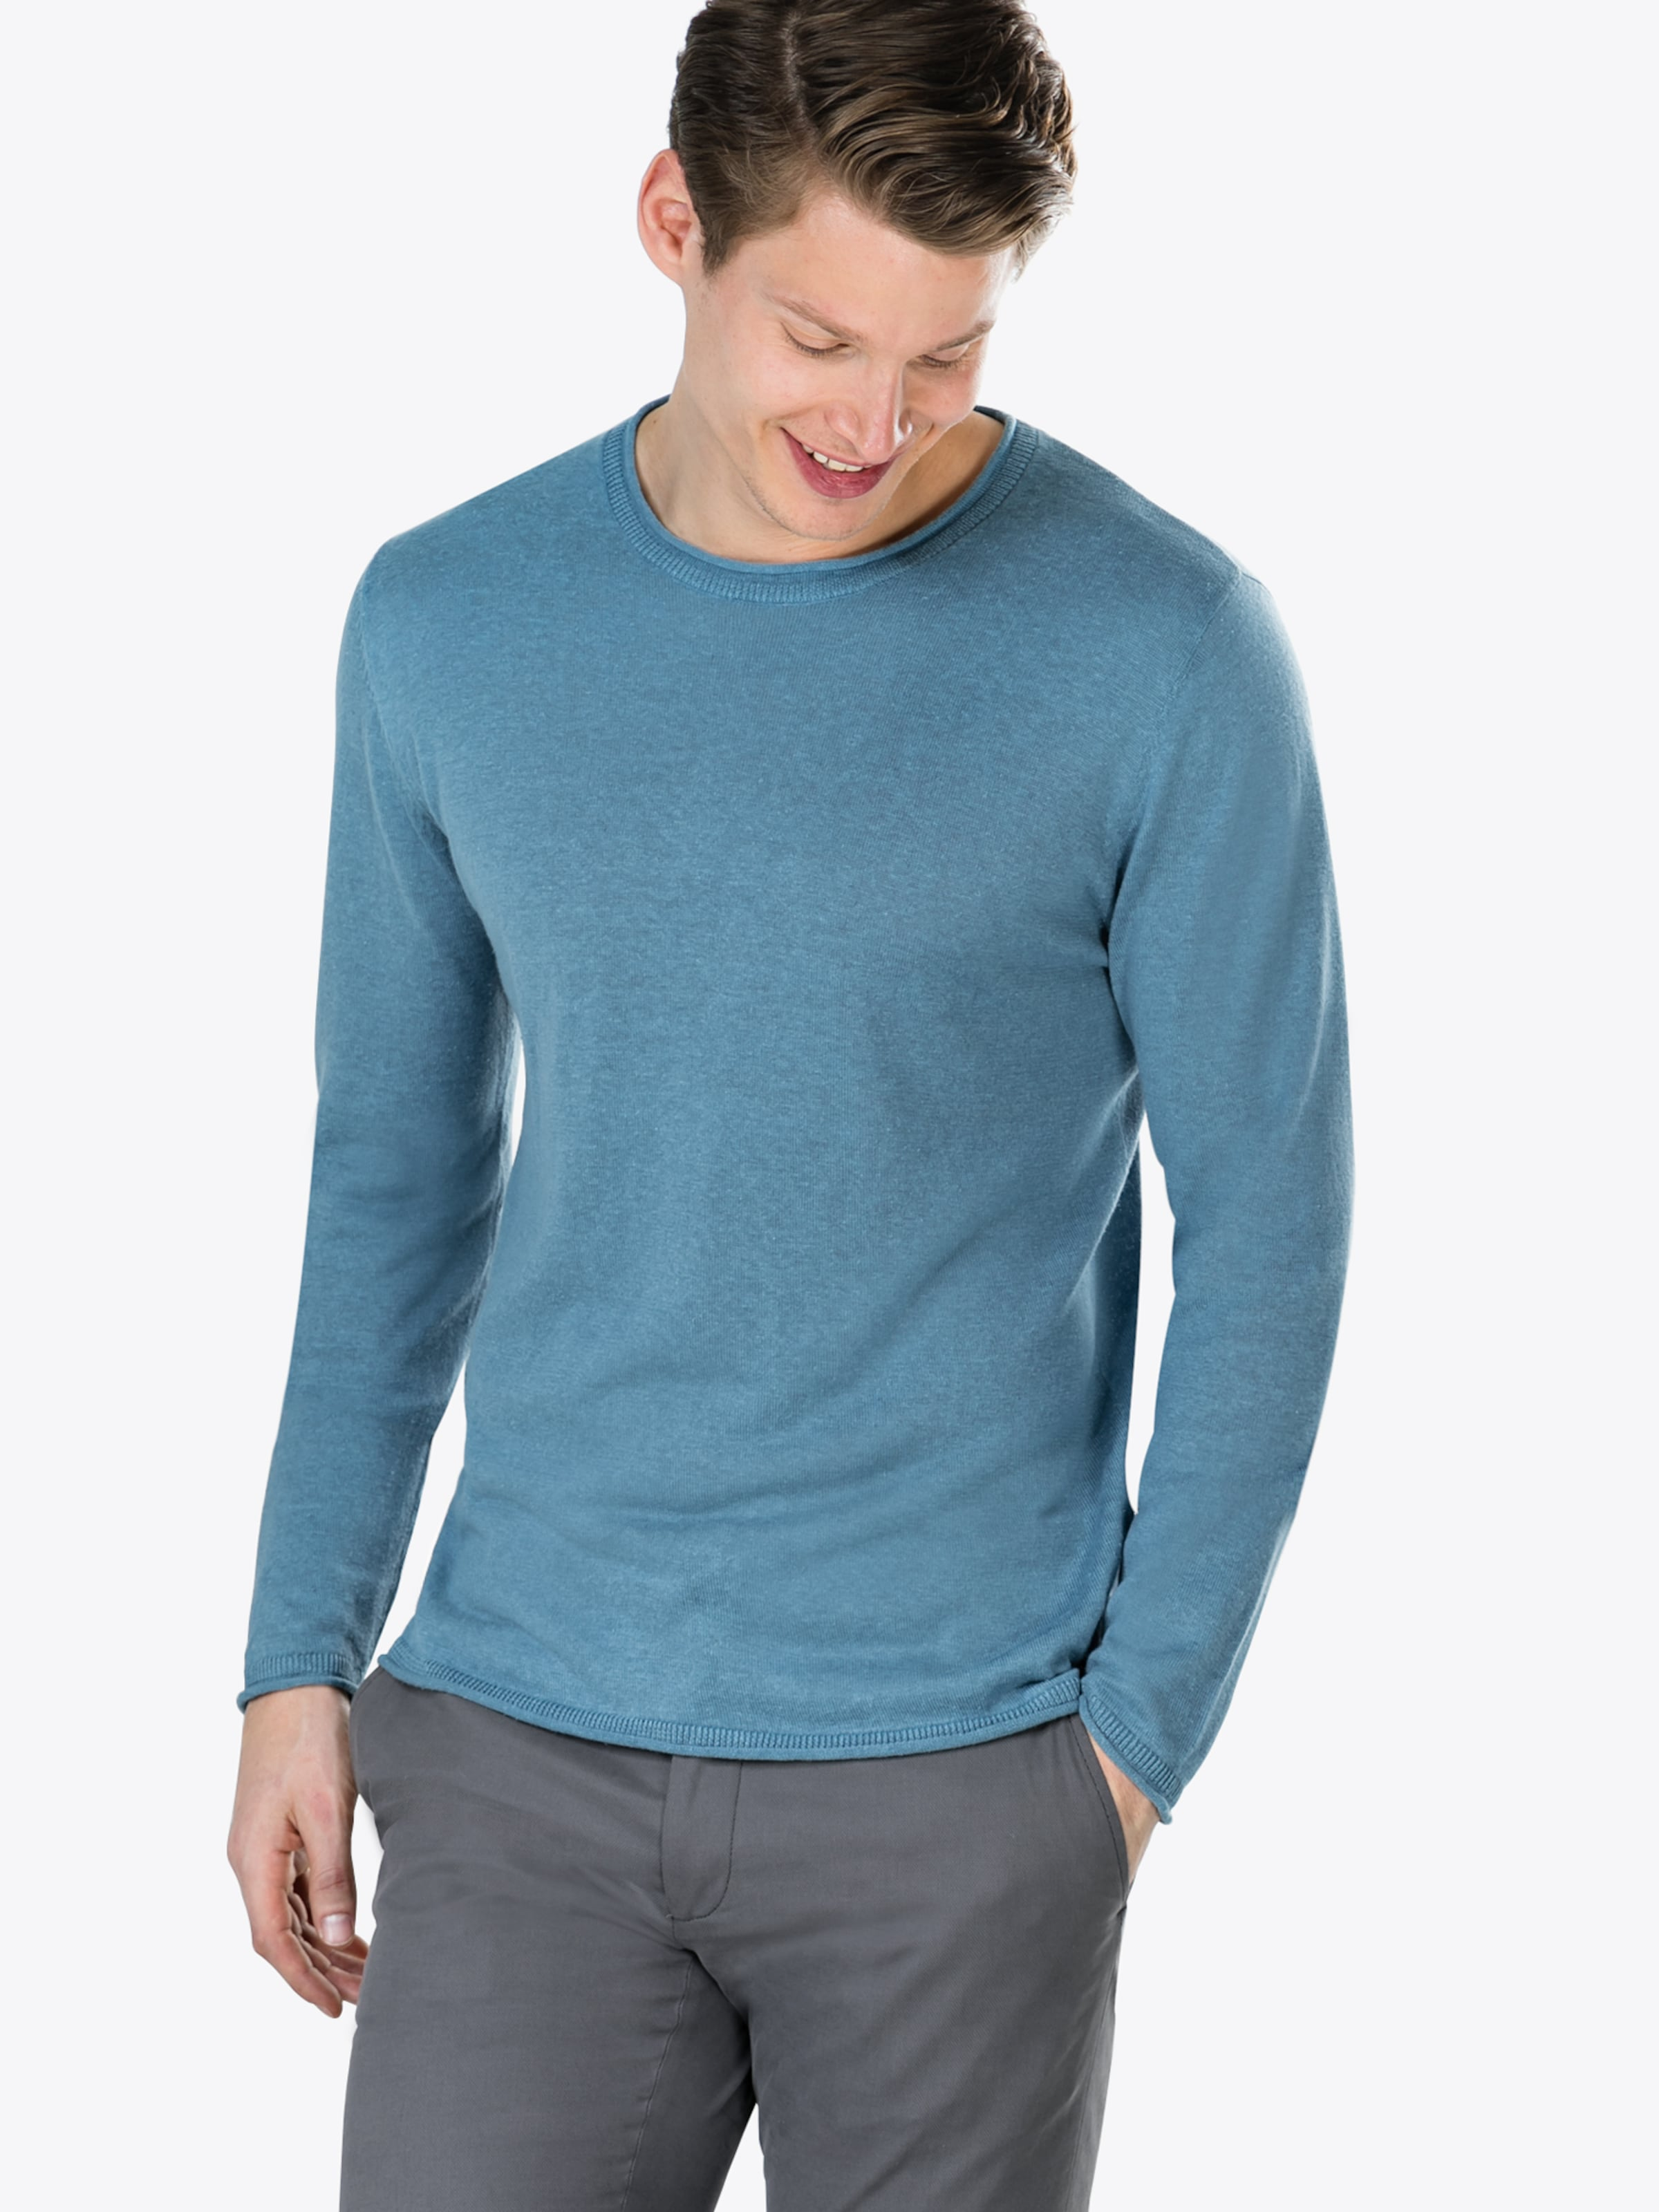 Ciel Edge' Pull Bleu 'single Knowledgecotton Apparel Roll Knit over With En nyvNwm08OP